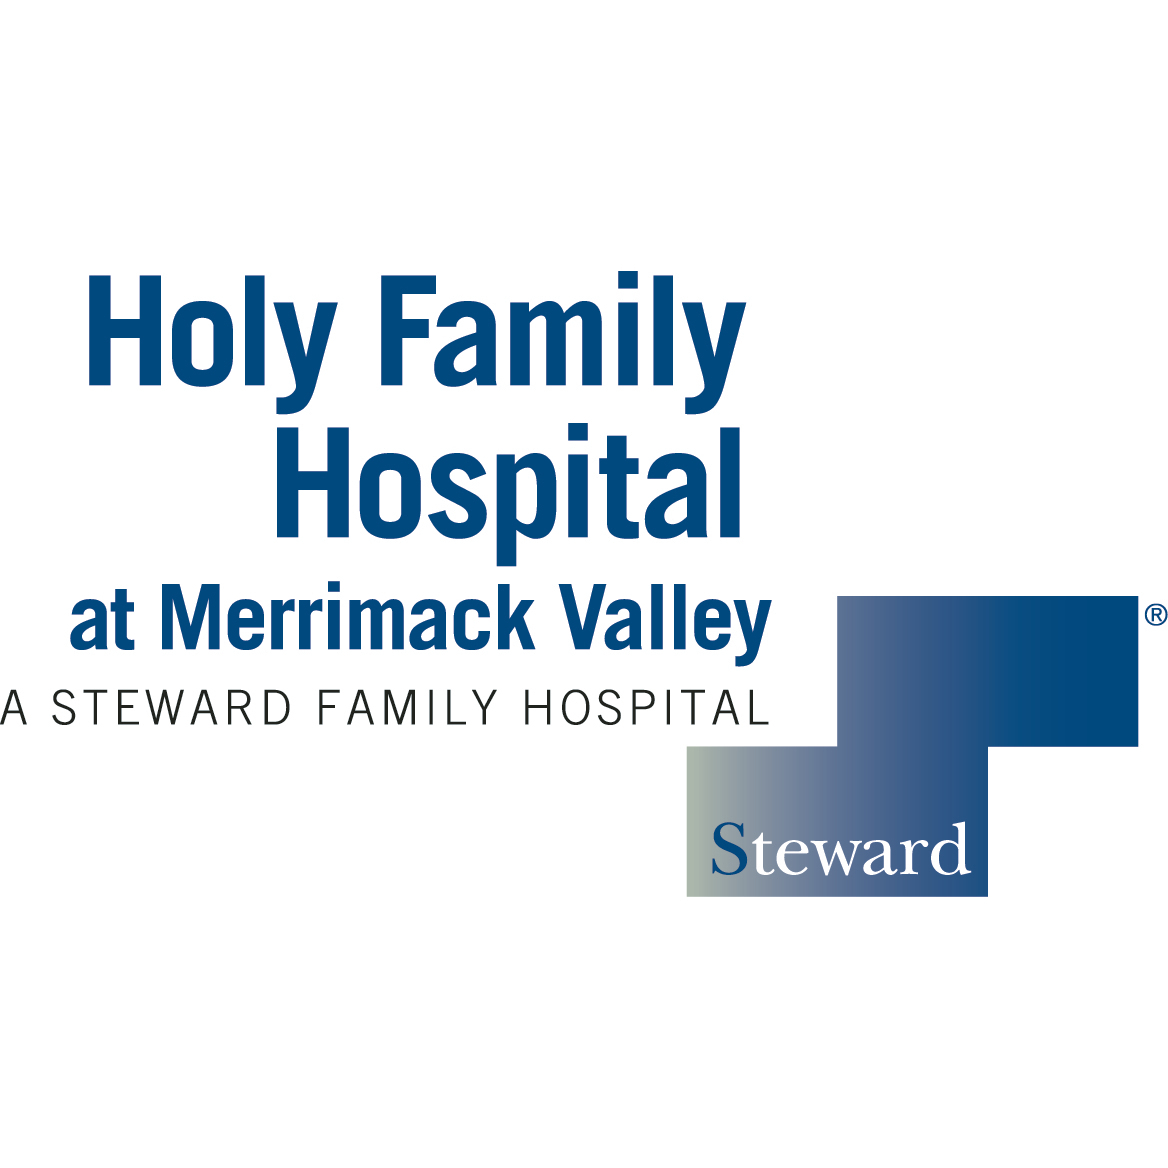 Holy Family Hospital At Merrimack Valley In Haverhill Ma